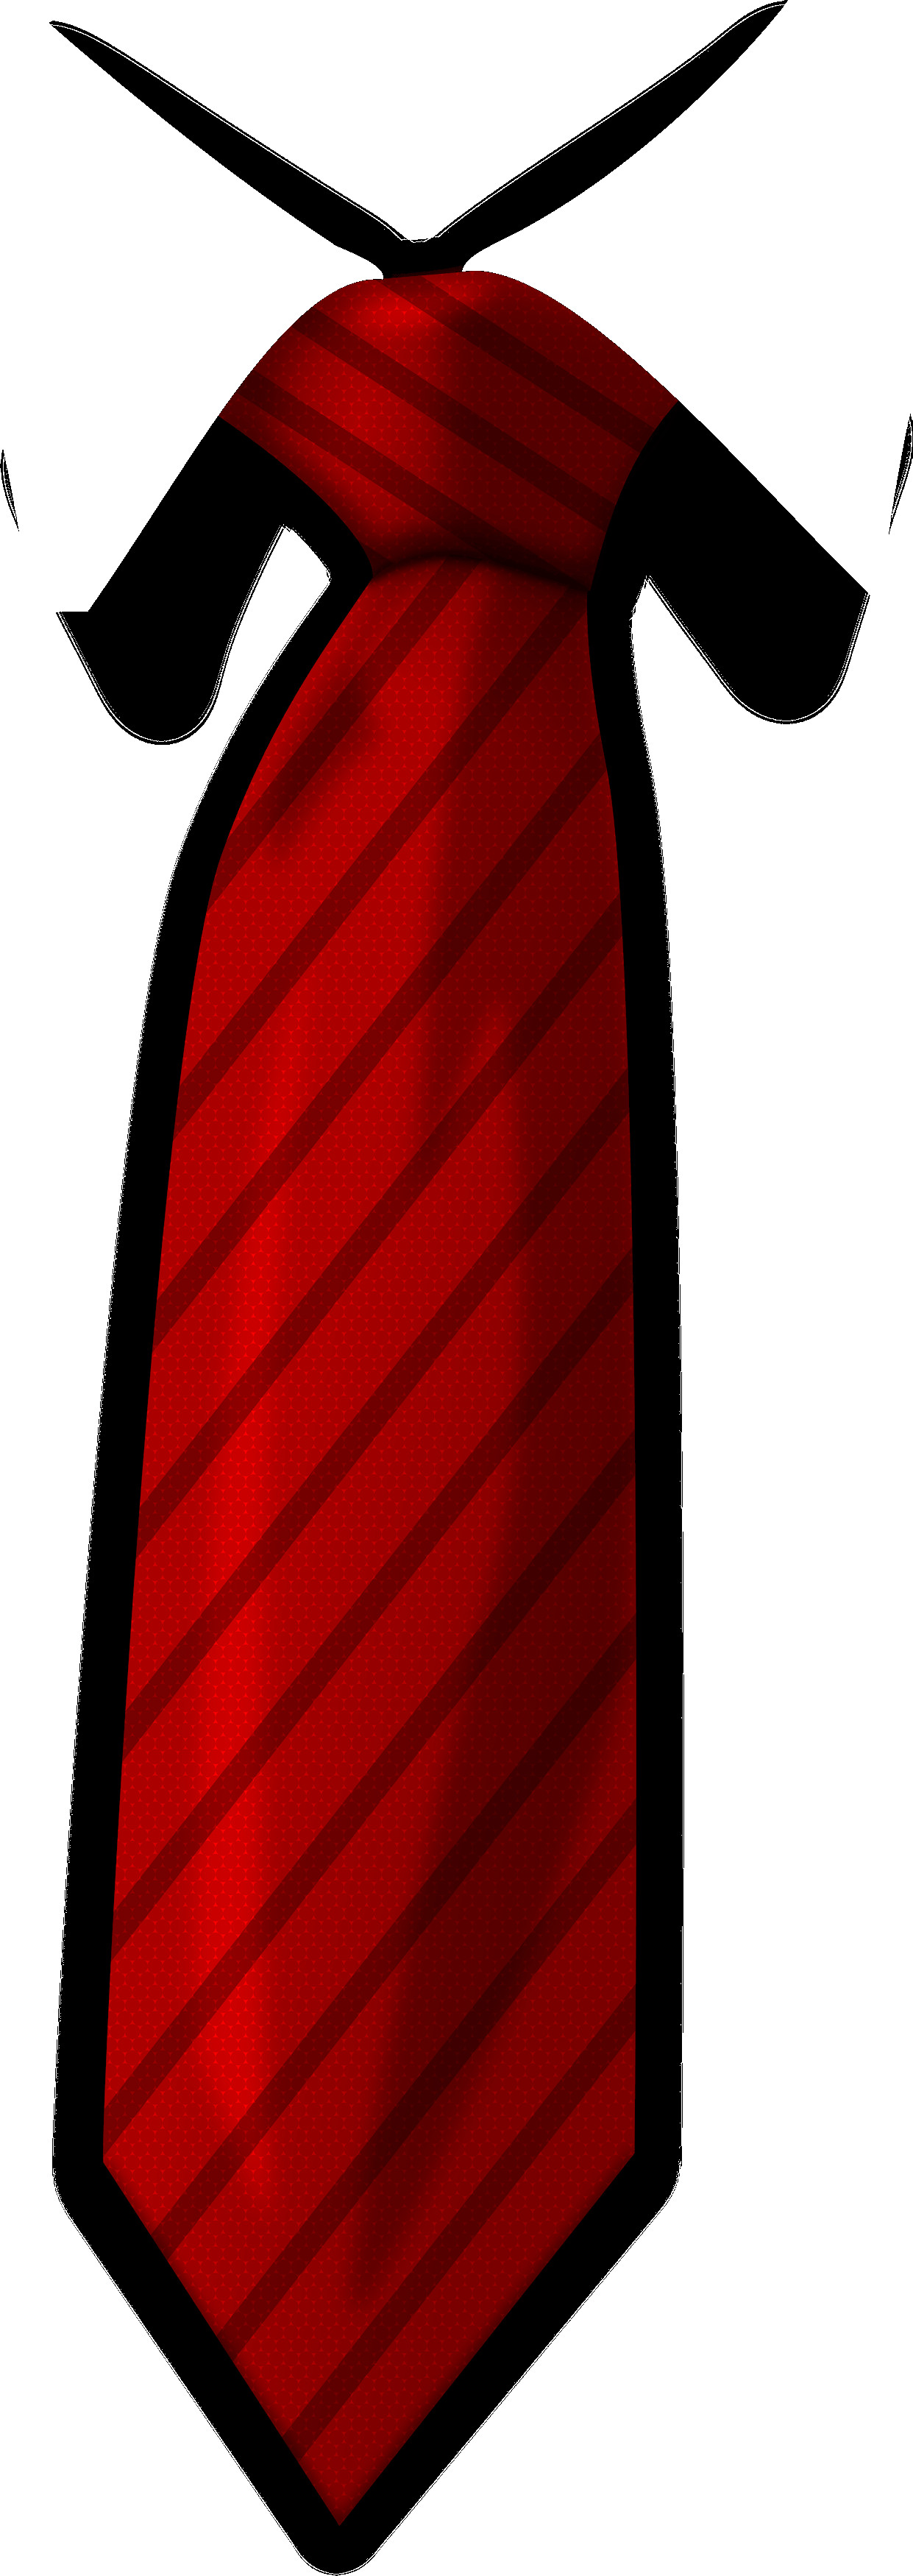 1241x3500 Neckties Free Images At Clkercom Vector Clip Art Ties Blog